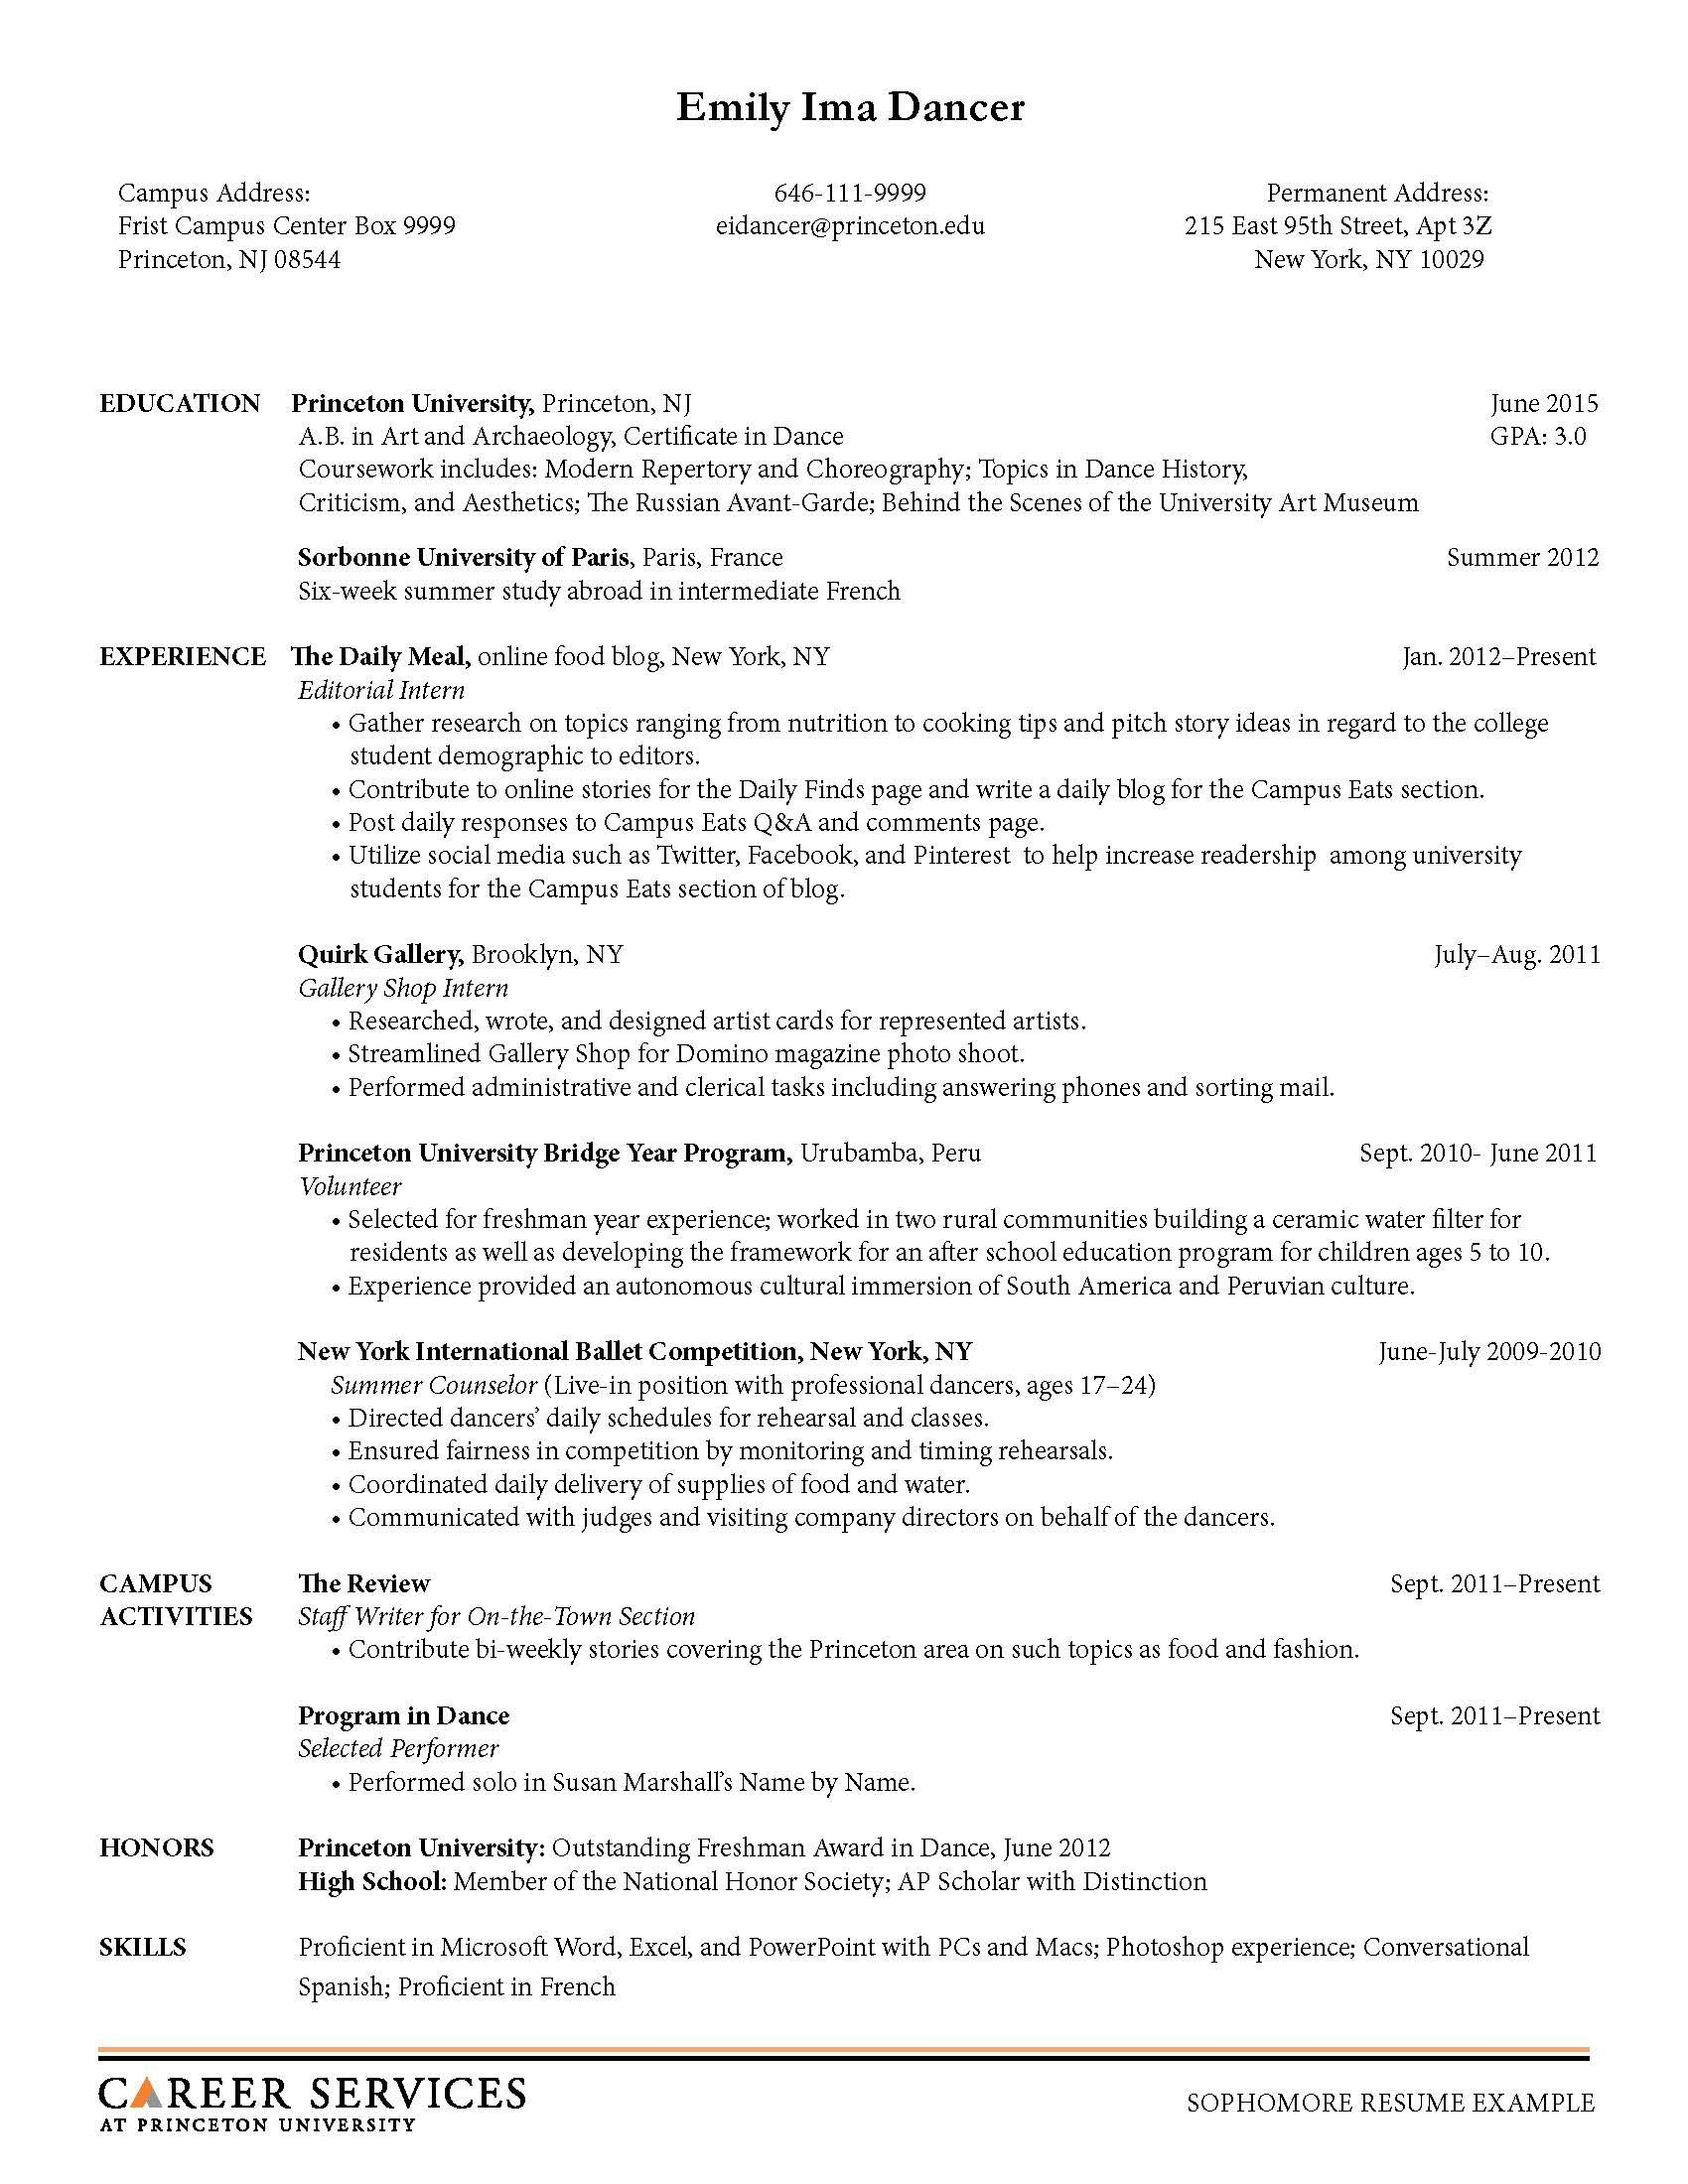 Opposenewapstandardsus  Picturesque Sample Resume Resume And Career On Pinterest With Goodlooking Child Care Resumes Besides Language Proficiency Resume Furthermore Resume Consulting With Delectable Fancy Resume Templates Also Cna Resume Sample With Experience In Addition Resume For Esthetician And Bartender Skills Resume As Well As Bank Teller Resumes Additionally Dictionary Resume From Pinterestcom With Opposenewapstandardsus  Goodlooking Sample Resume Resume And Career On Pinterest With Delectable Child Care Resumes Besides Language Proficiency Resume Furthermore Resume Consulting And Picturesque Fancy Resume Templates Also Cna Resume Sample With Experience In Addition Resume For Esthetician From Pinterestcom